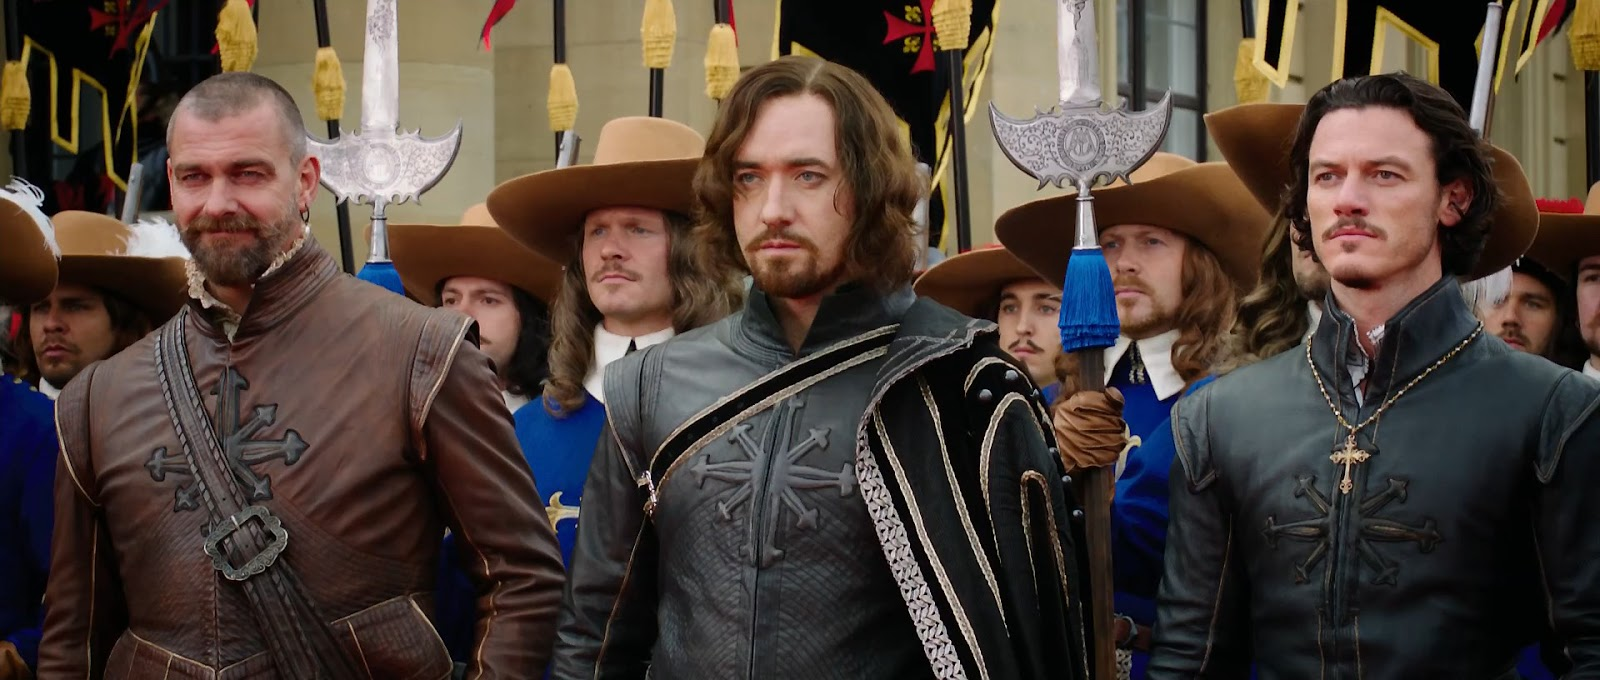 The Three Musketeers (2011) 4